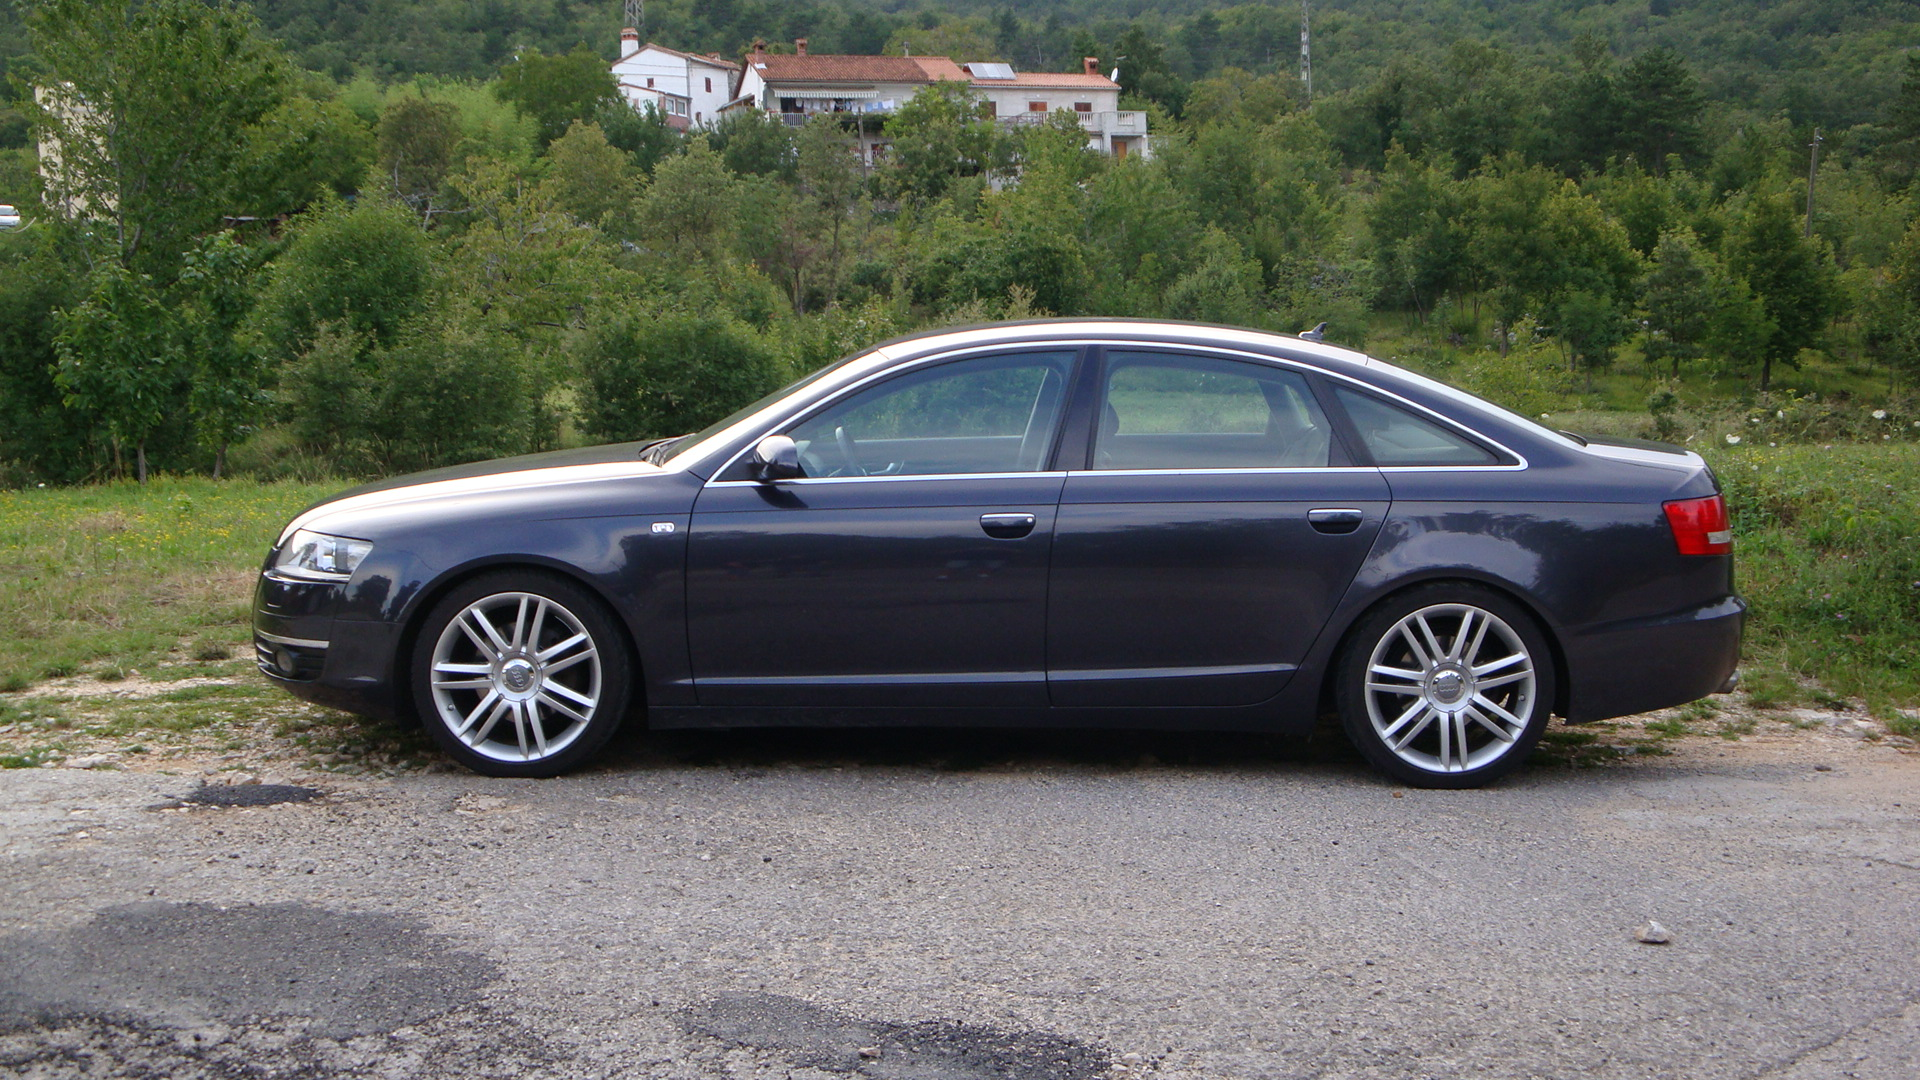 2014 audi a6 avant 4f c6 pictures information and specs auto. Black Bedroom Furniture Sets. Home Design Ideas